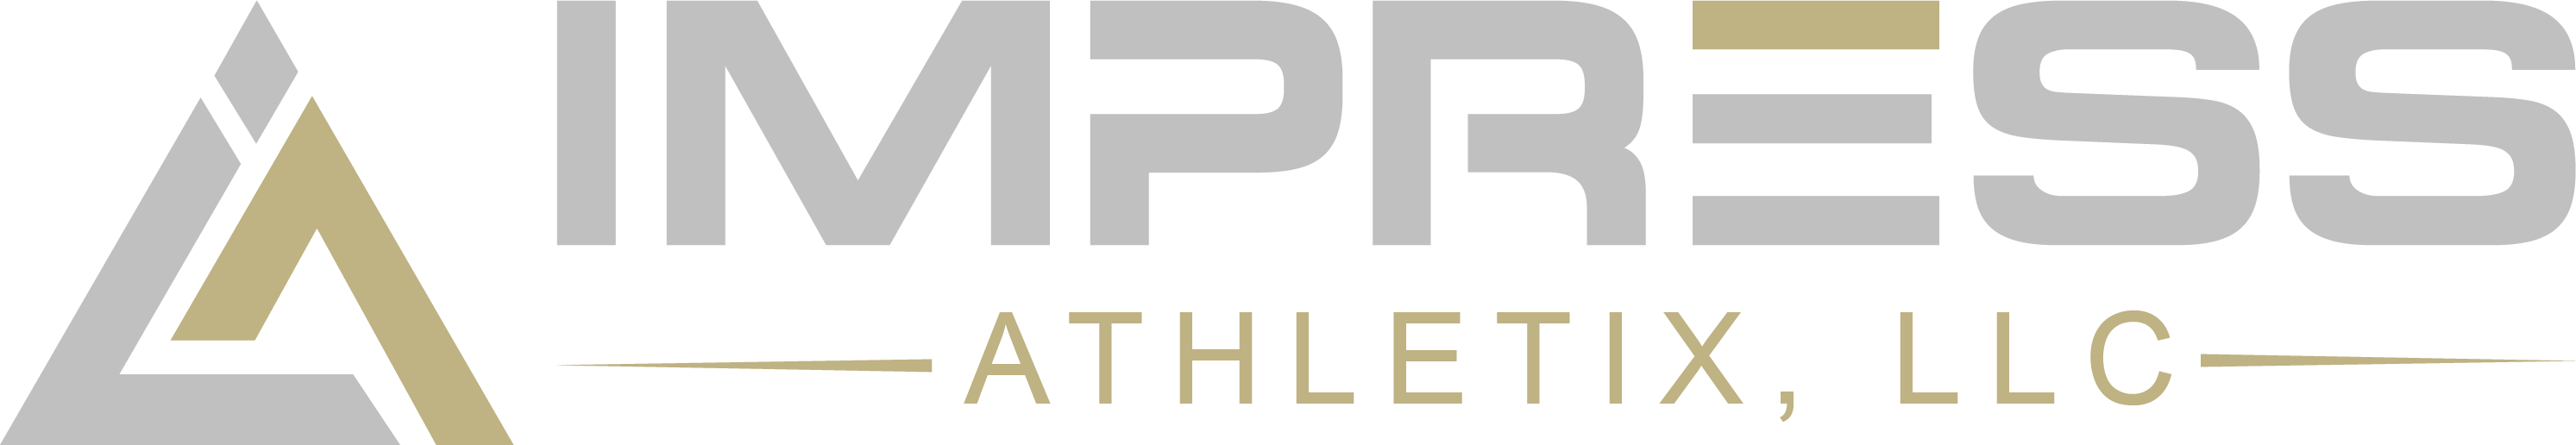 Impress Athletix, LLC